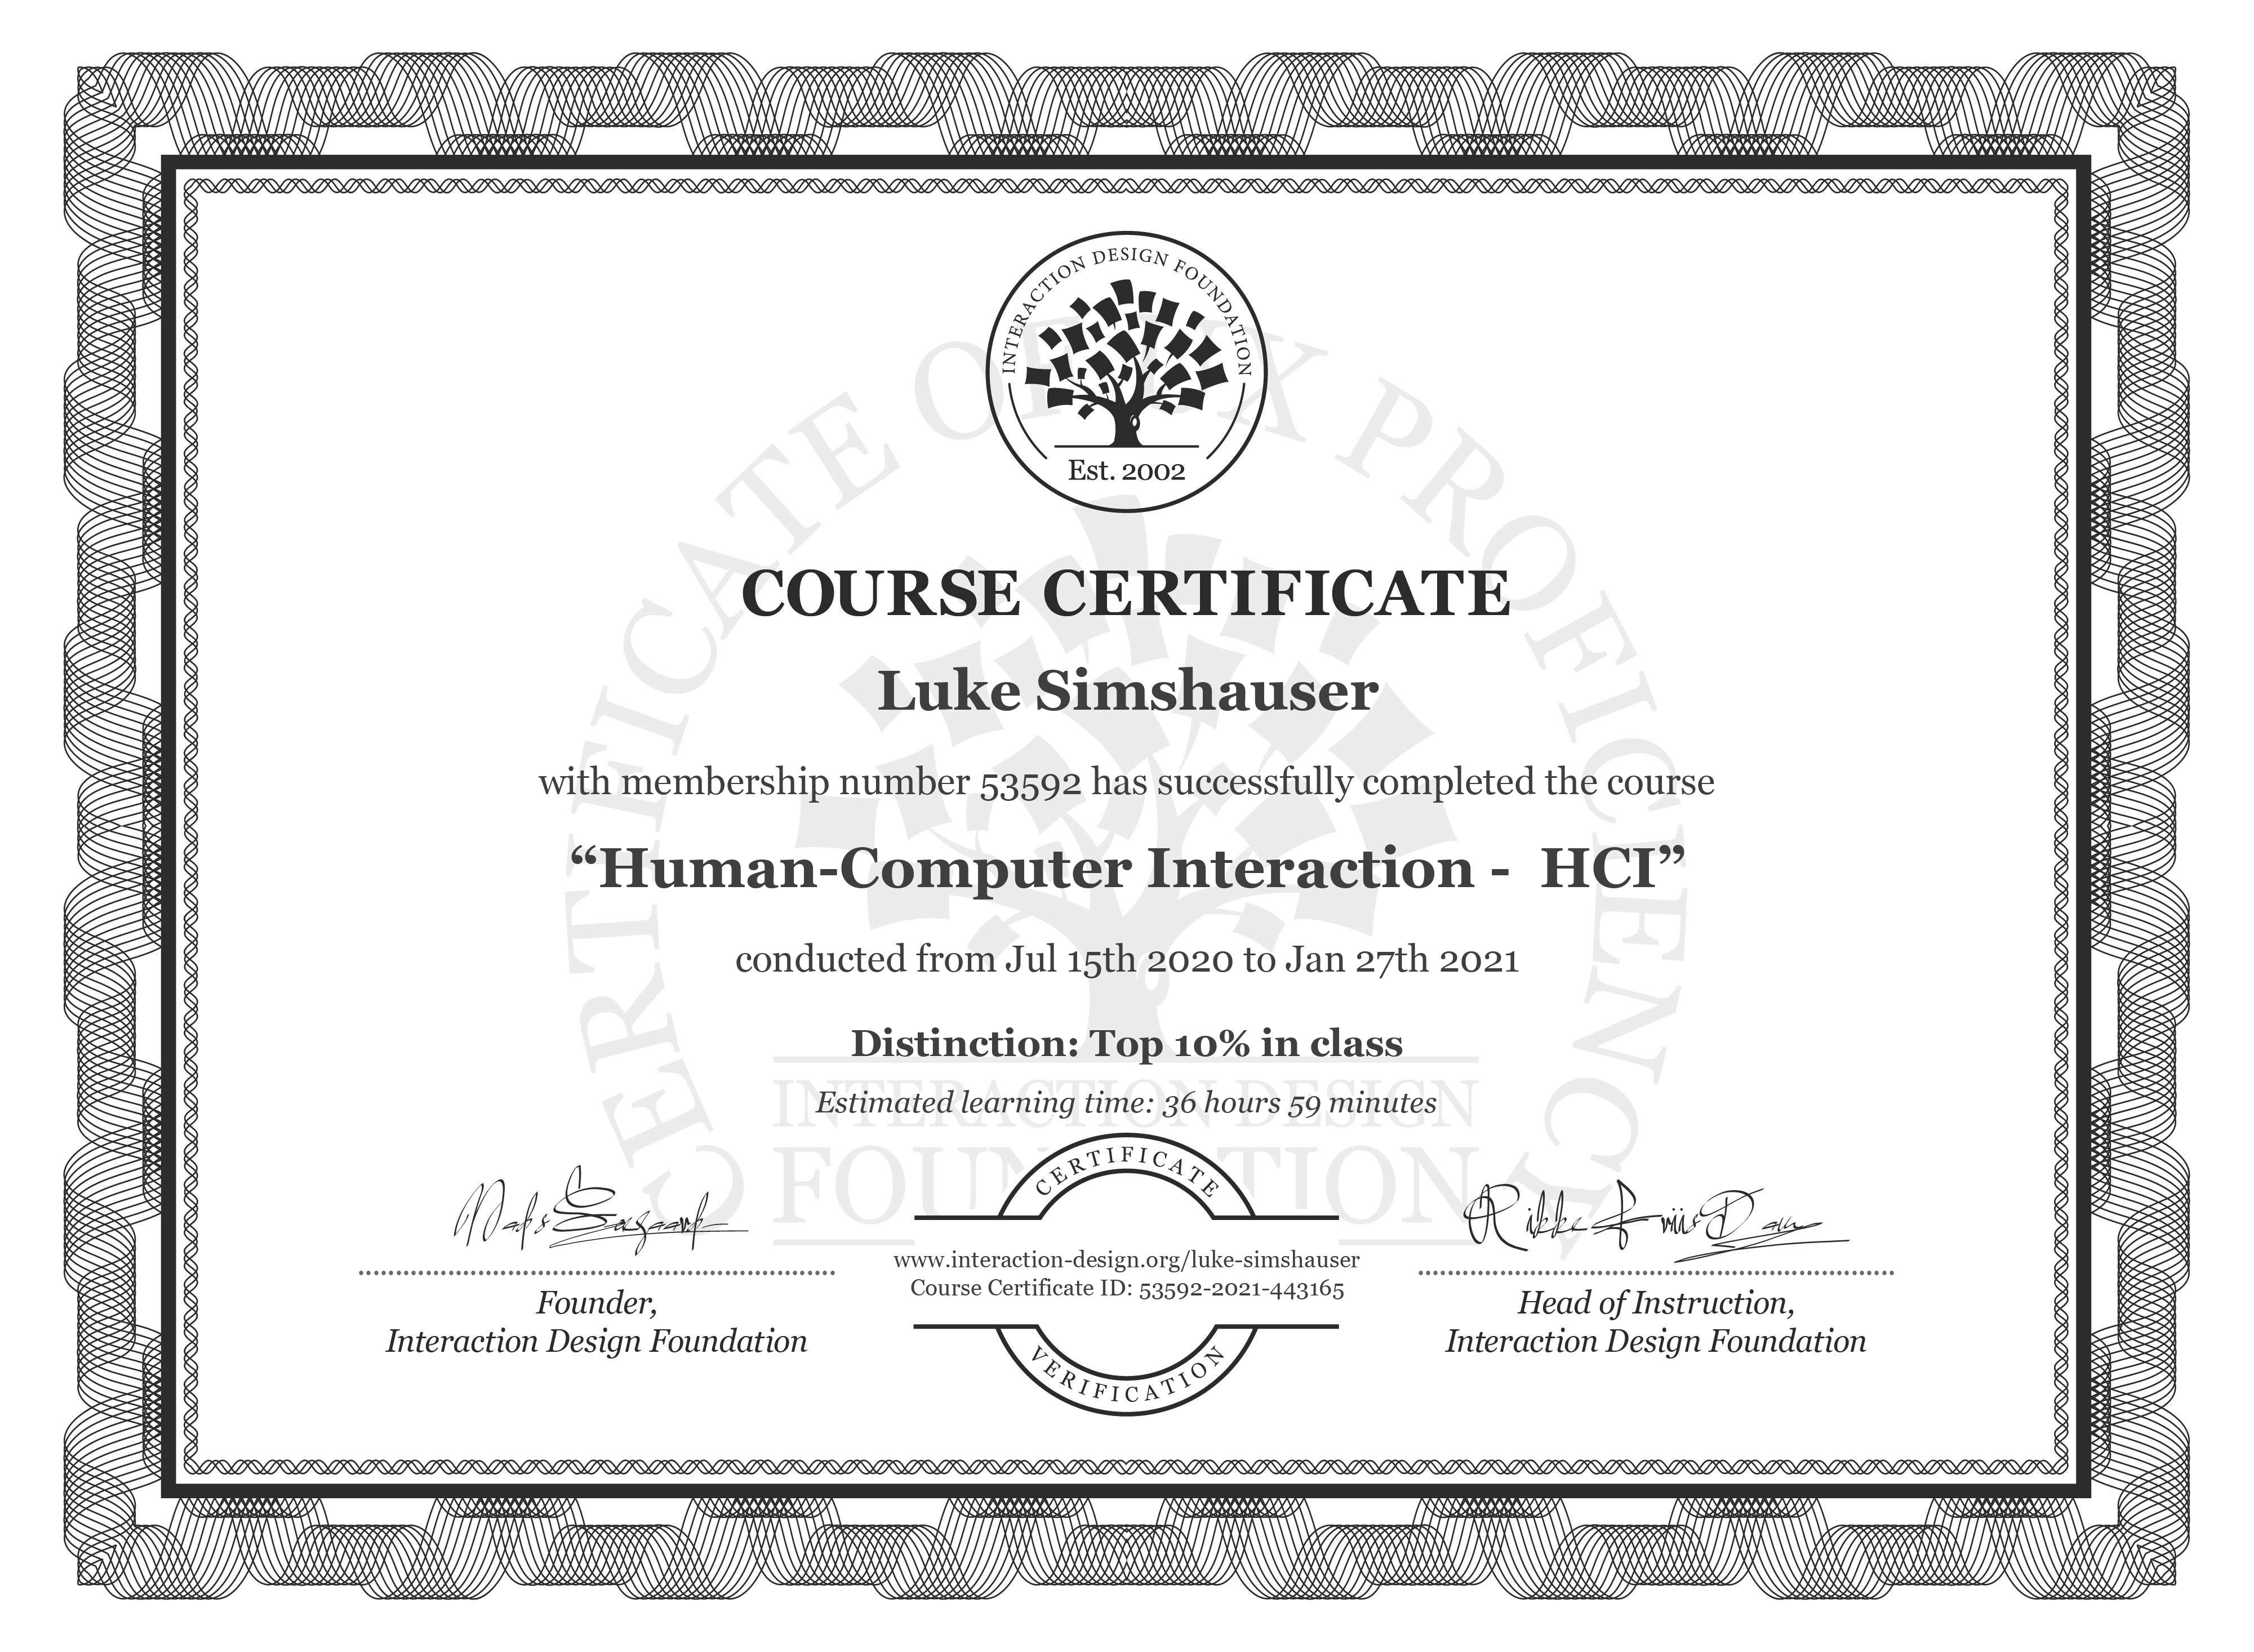 Luke Simshauser's Course Certificate: Human-Computer Interaction -  HCI